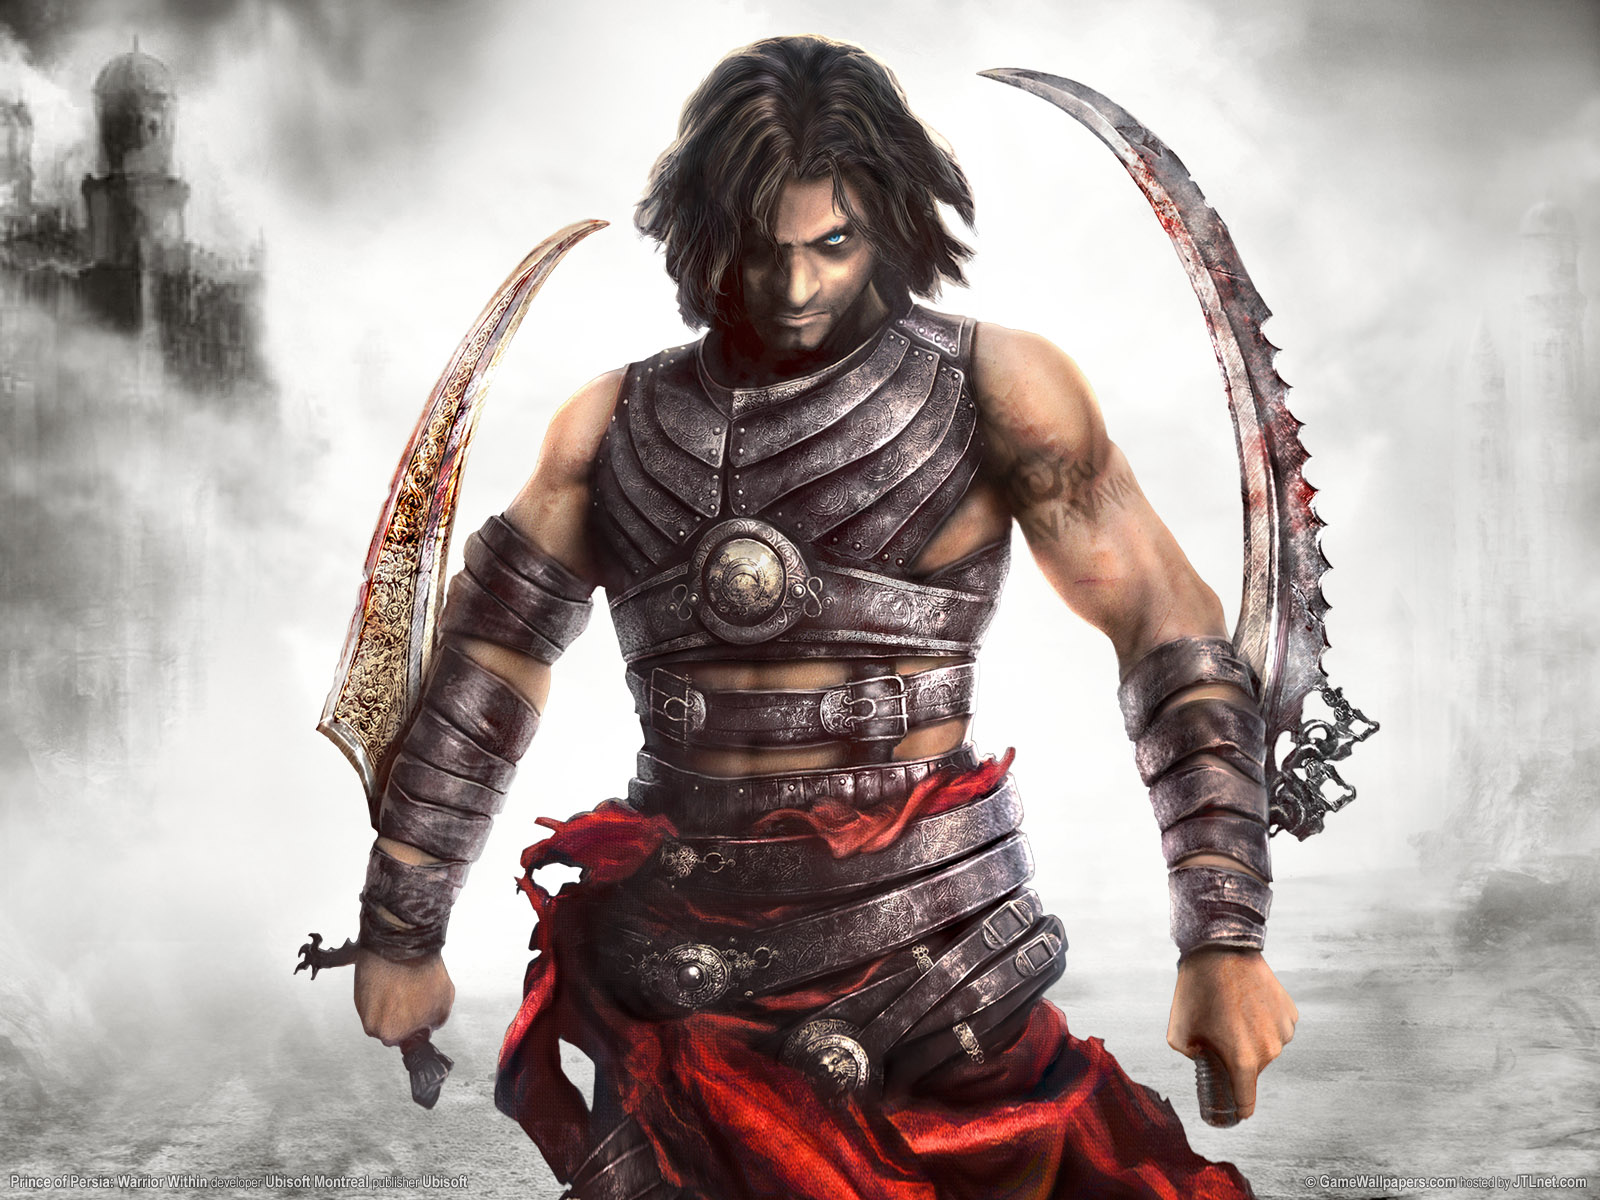 http://3.bp.blogspot.com/_a2z9pmg6cGQ/TAf7aL35rHI/AAAAAAAAANI/lKo-bVM3a5w/s1600/wallpaper_prince_of_persia_warrior_within_10_1600.jpg